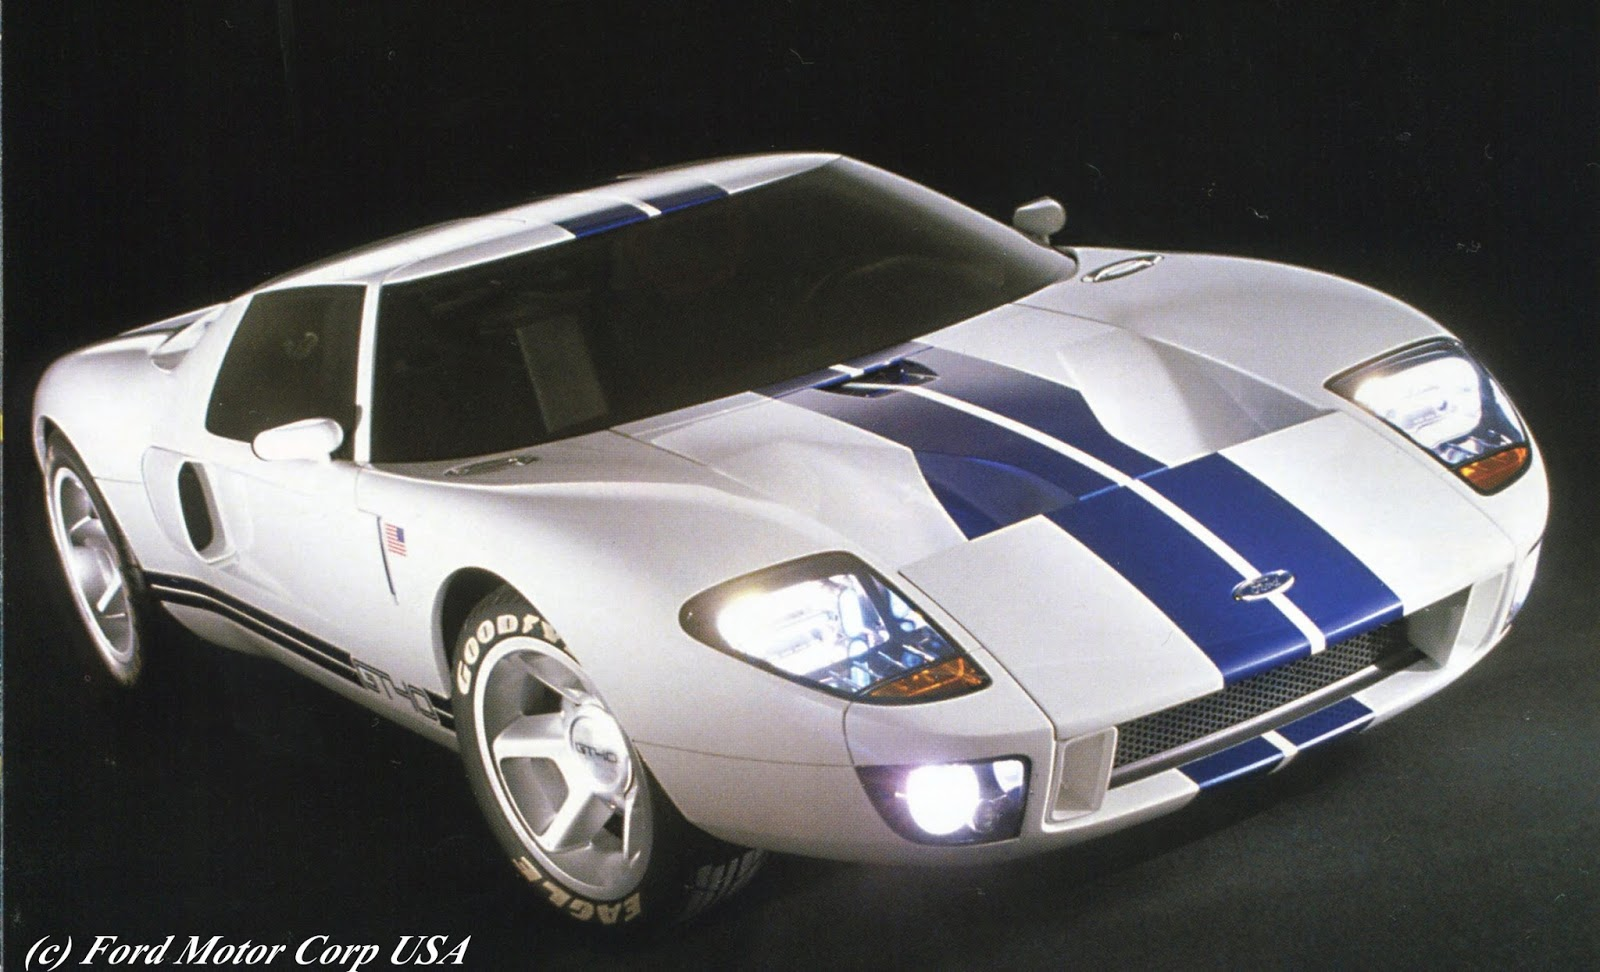 The Promotional Slick Ford Gt Concept Car As Shown In Living Legends Tour Literature